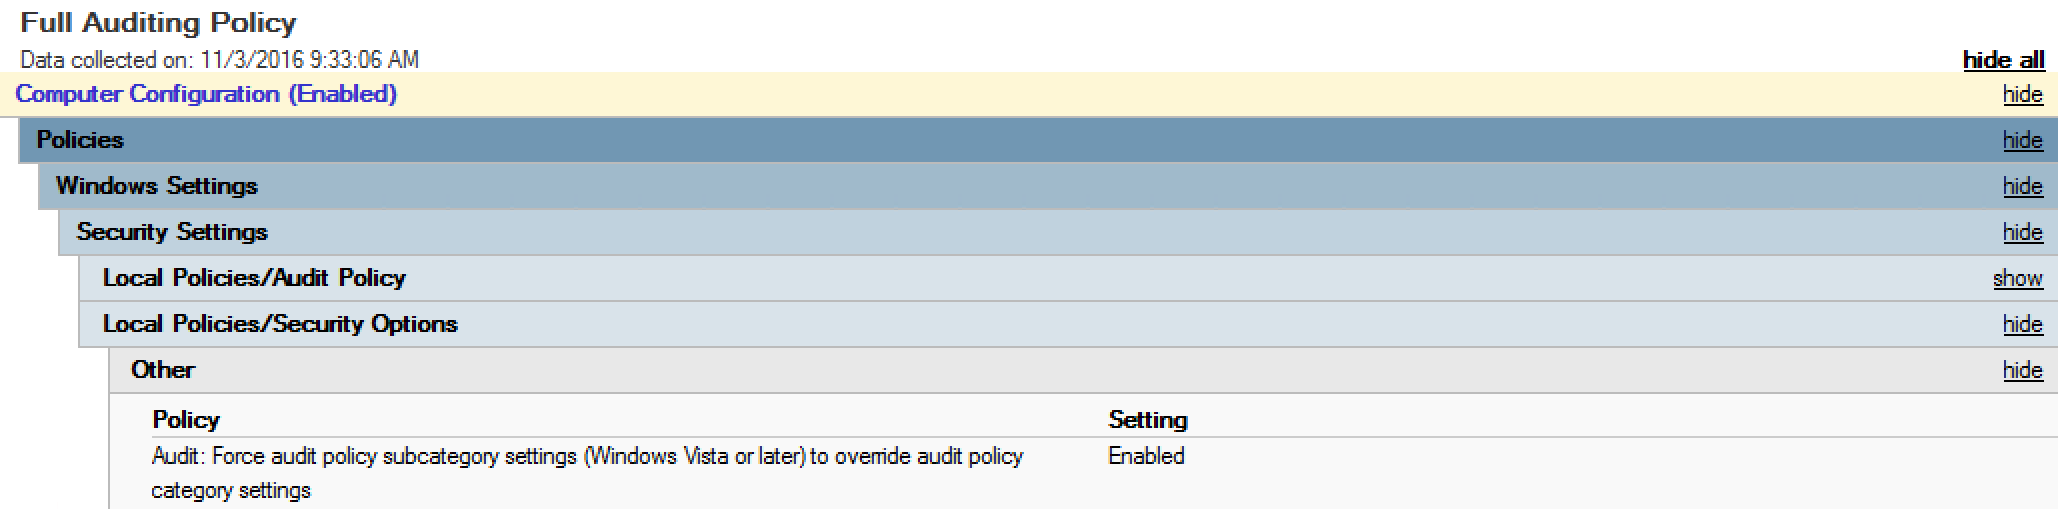 domaincontroller-advanced-auditing-force-audit-policy-subcategory